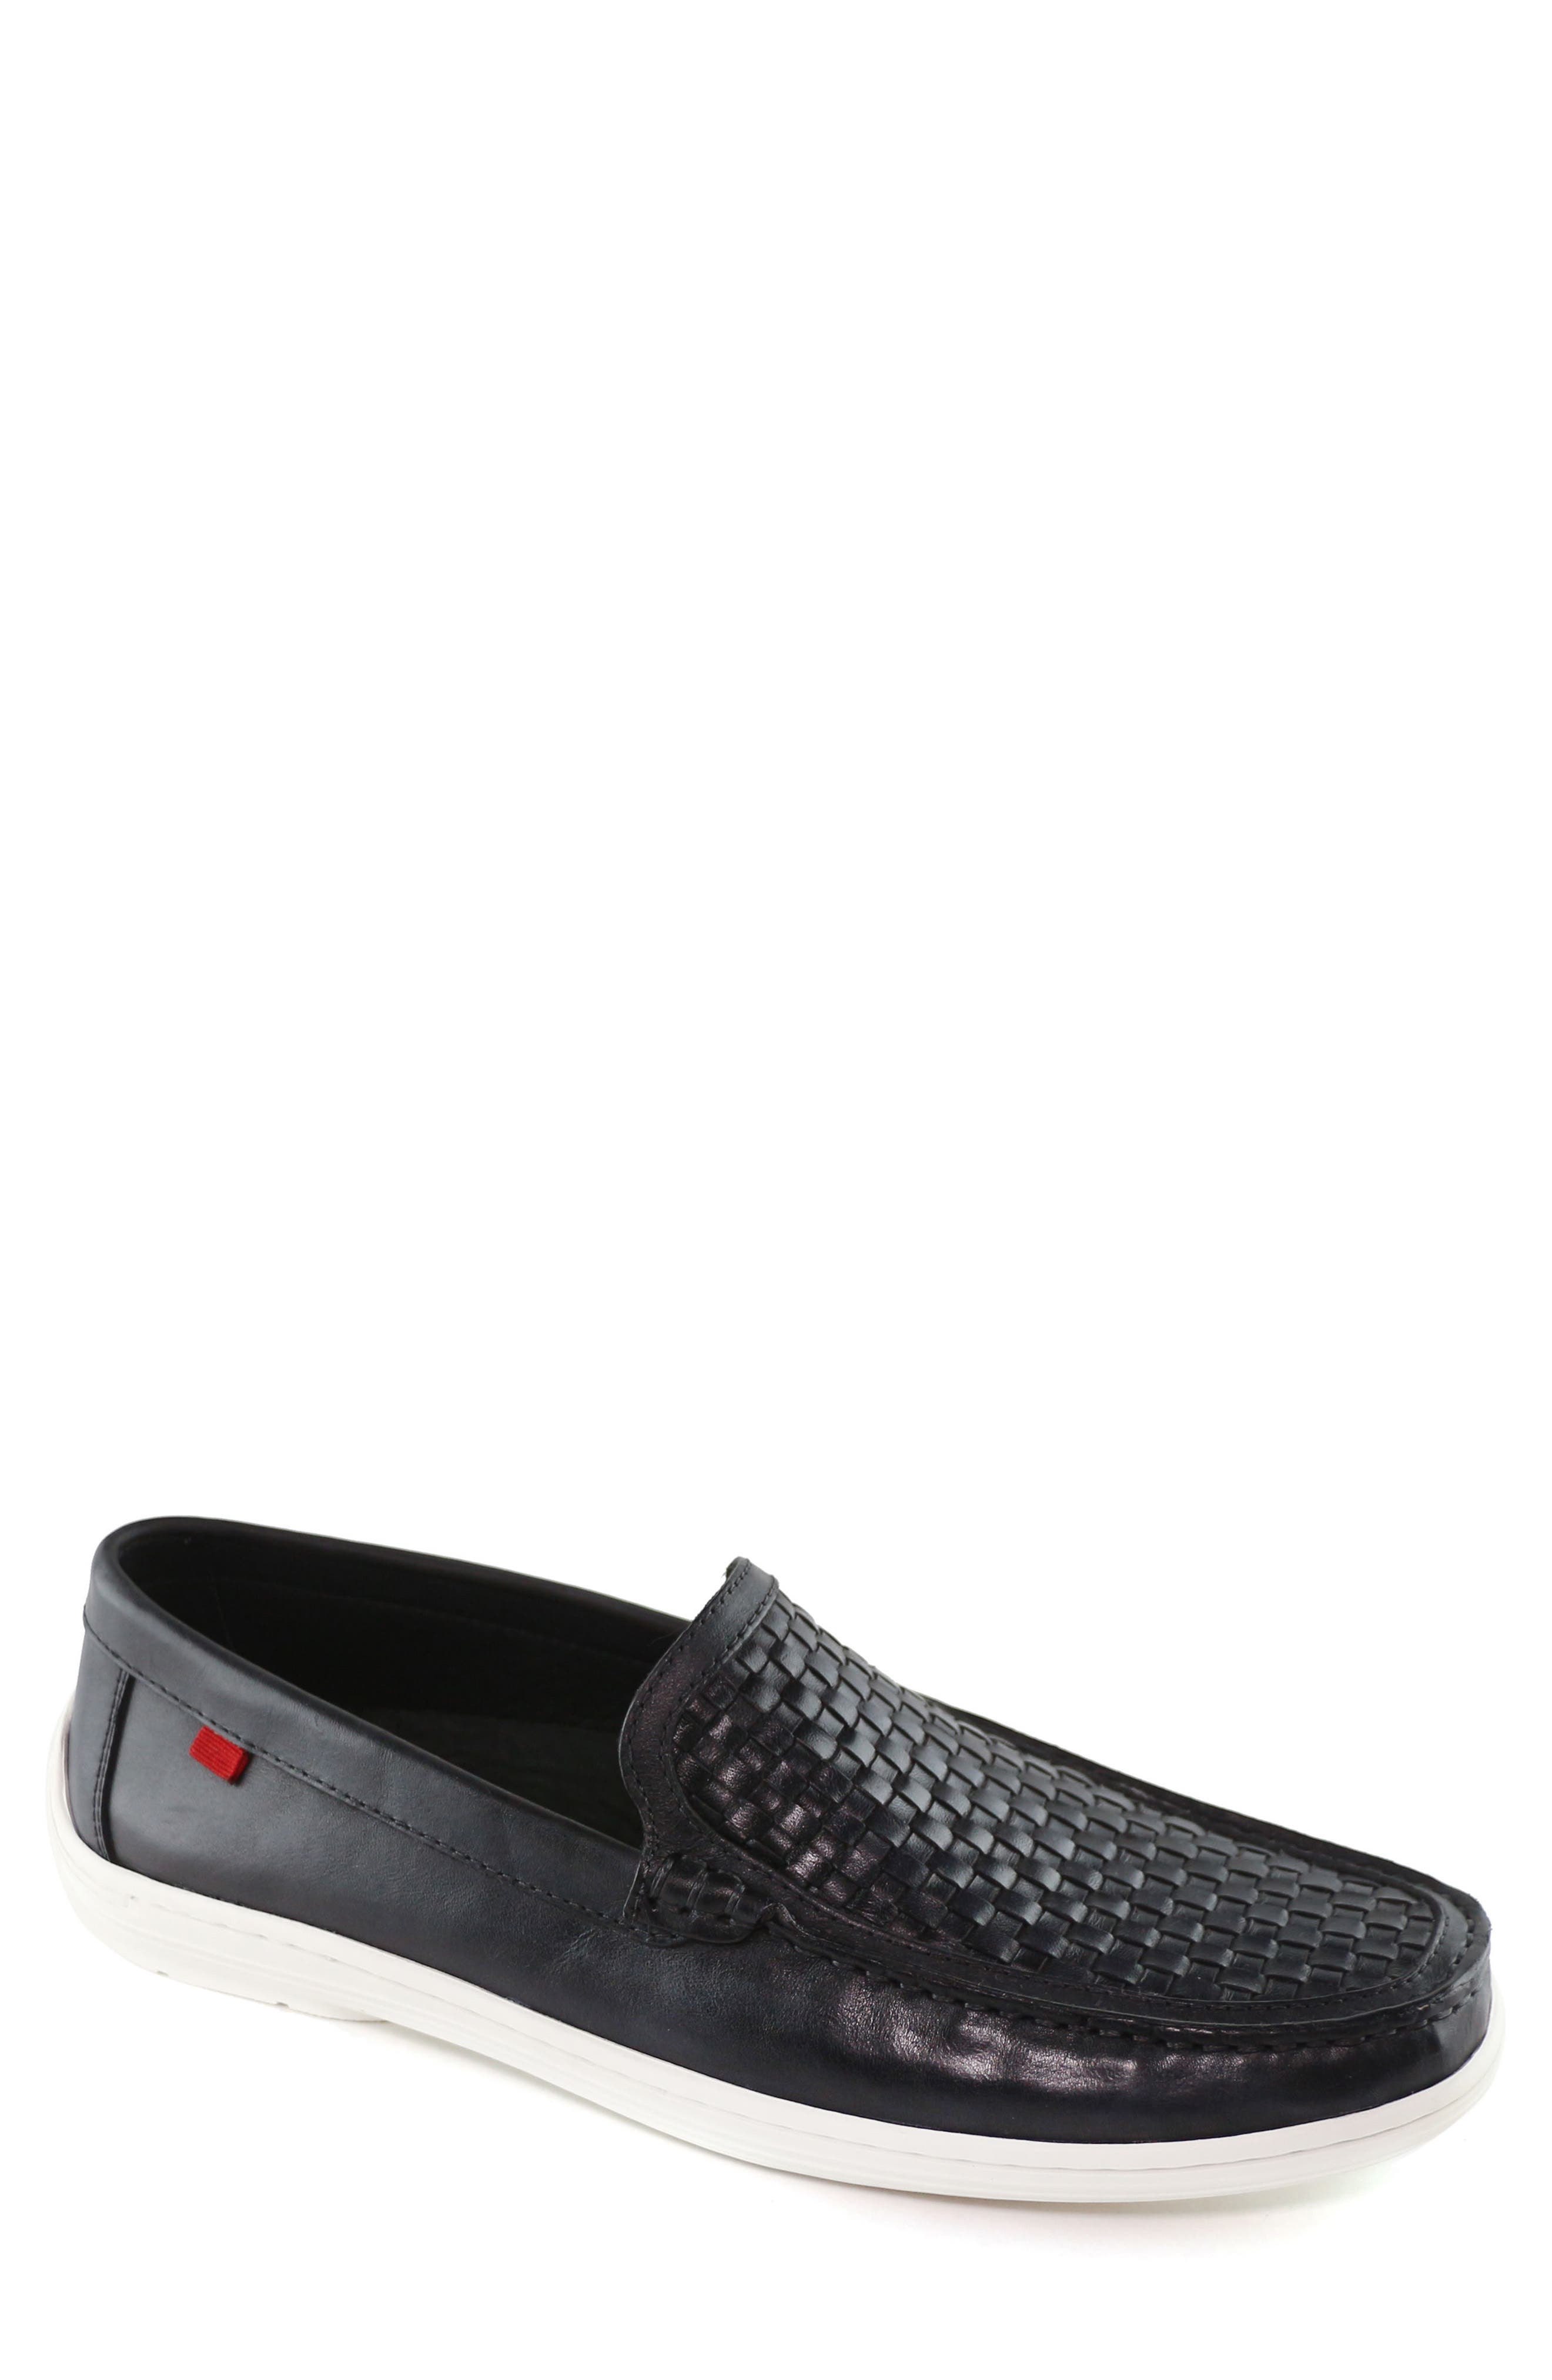 MARC JOSEPH NEW YORK South Street Woven Driving Loafer, Main, color, 001